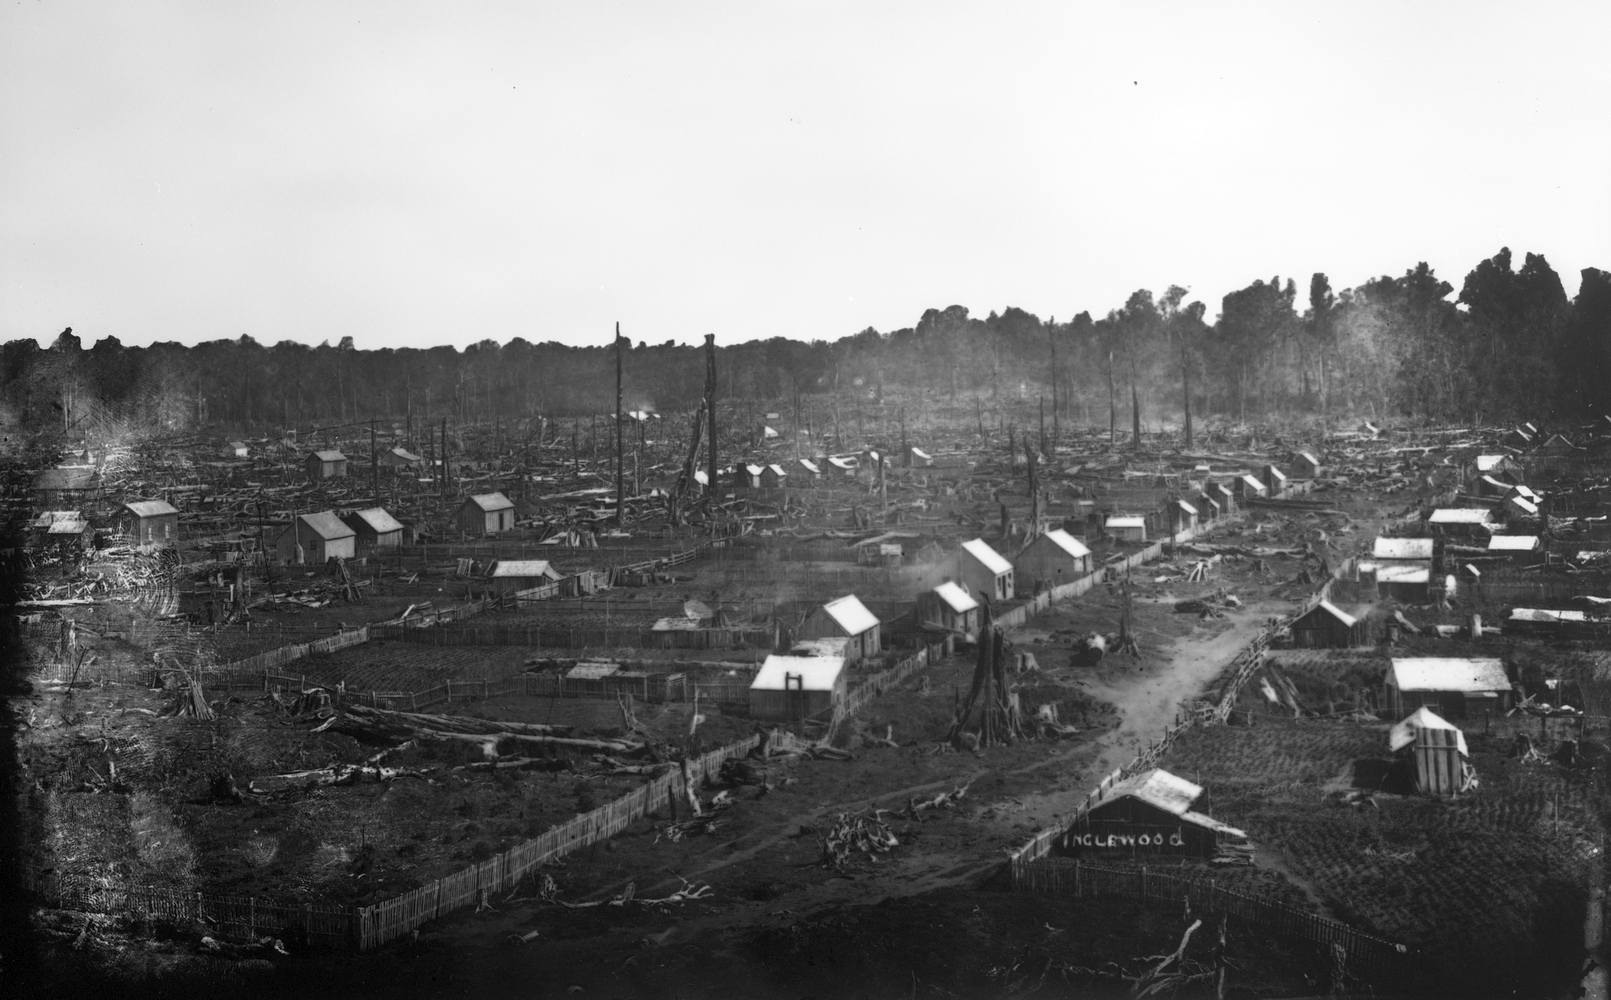 A continuation of the  previous photograph of early Inglewood. Two rows of little huts from the foreground line the stump-filled area between them.  The only reason one realised this will be a 'road' is because of the fencing. SOme really tall tree stumps between the  foreground huts, and others farther back.